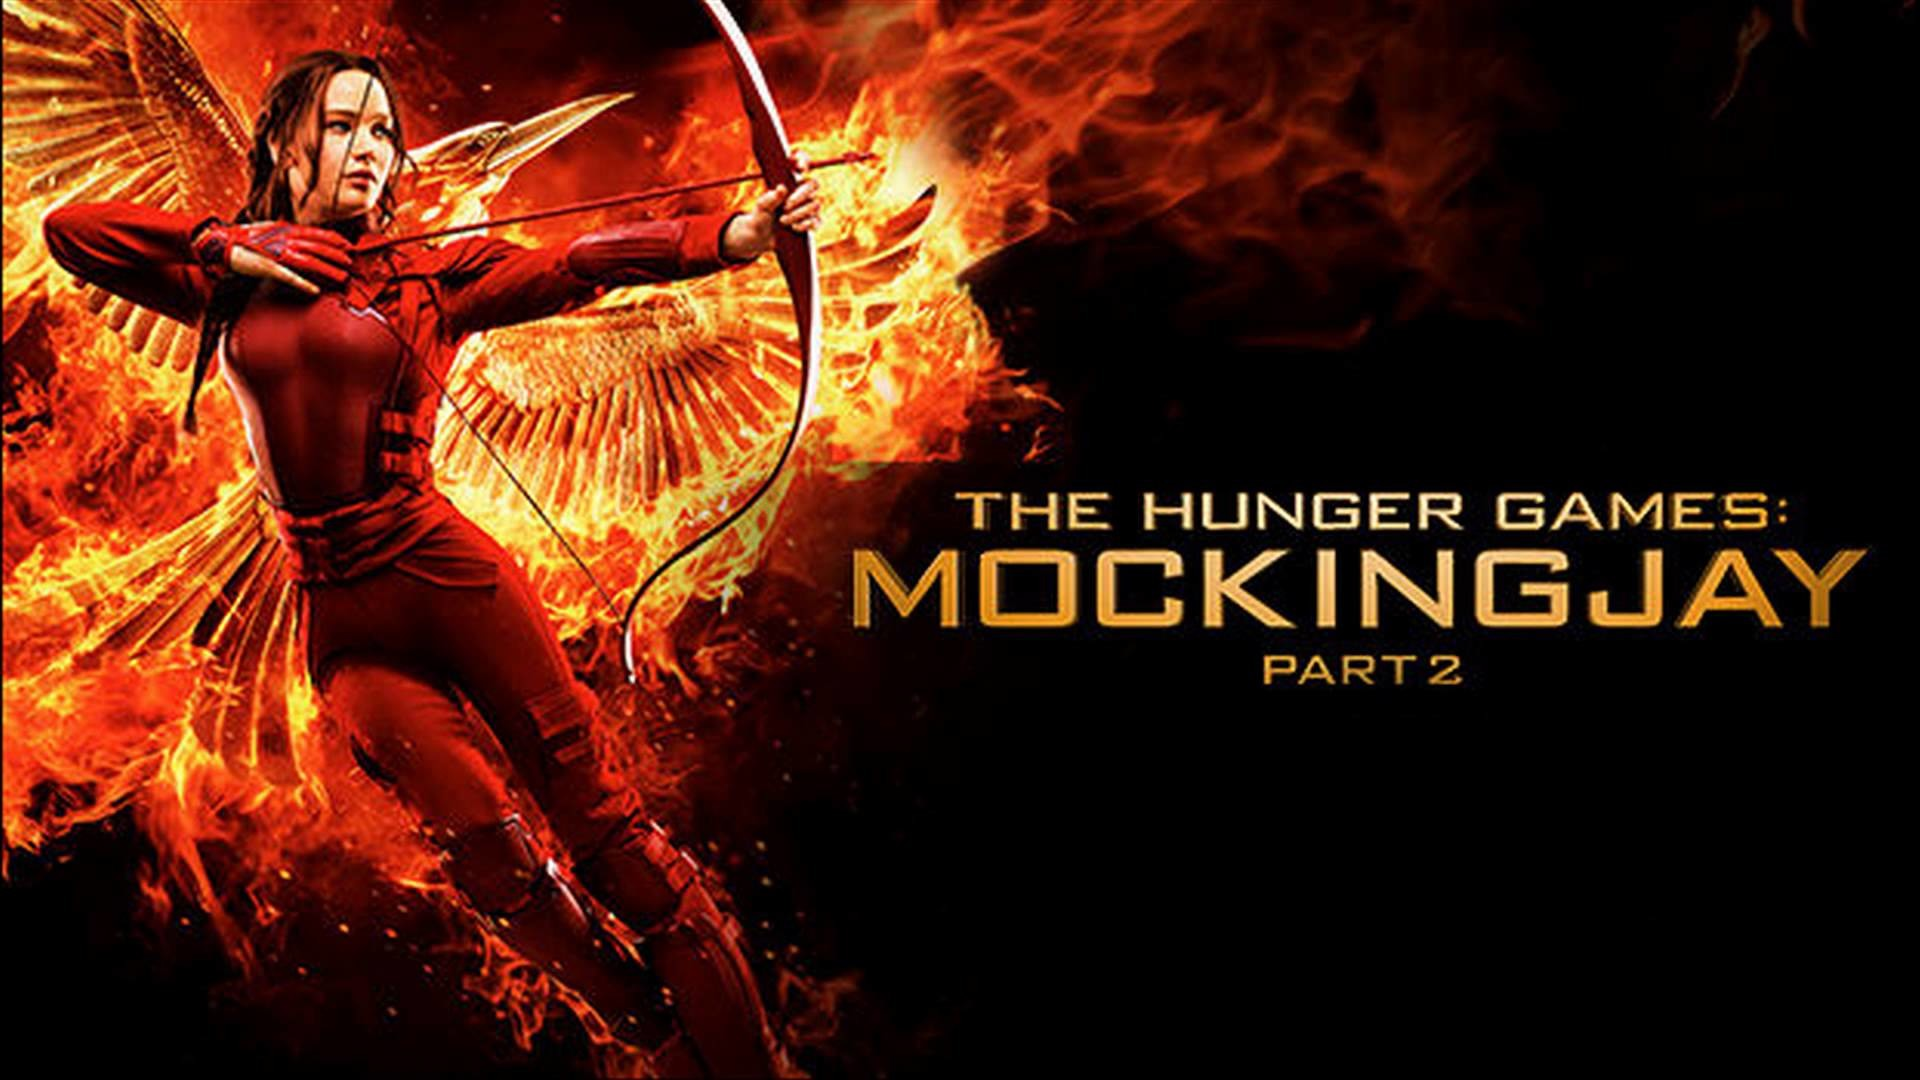 1920x1080 The Hunger Games: Mockingjay - Part 2 WallpapersThe Hunger Games: Mockingjay  - Part 2